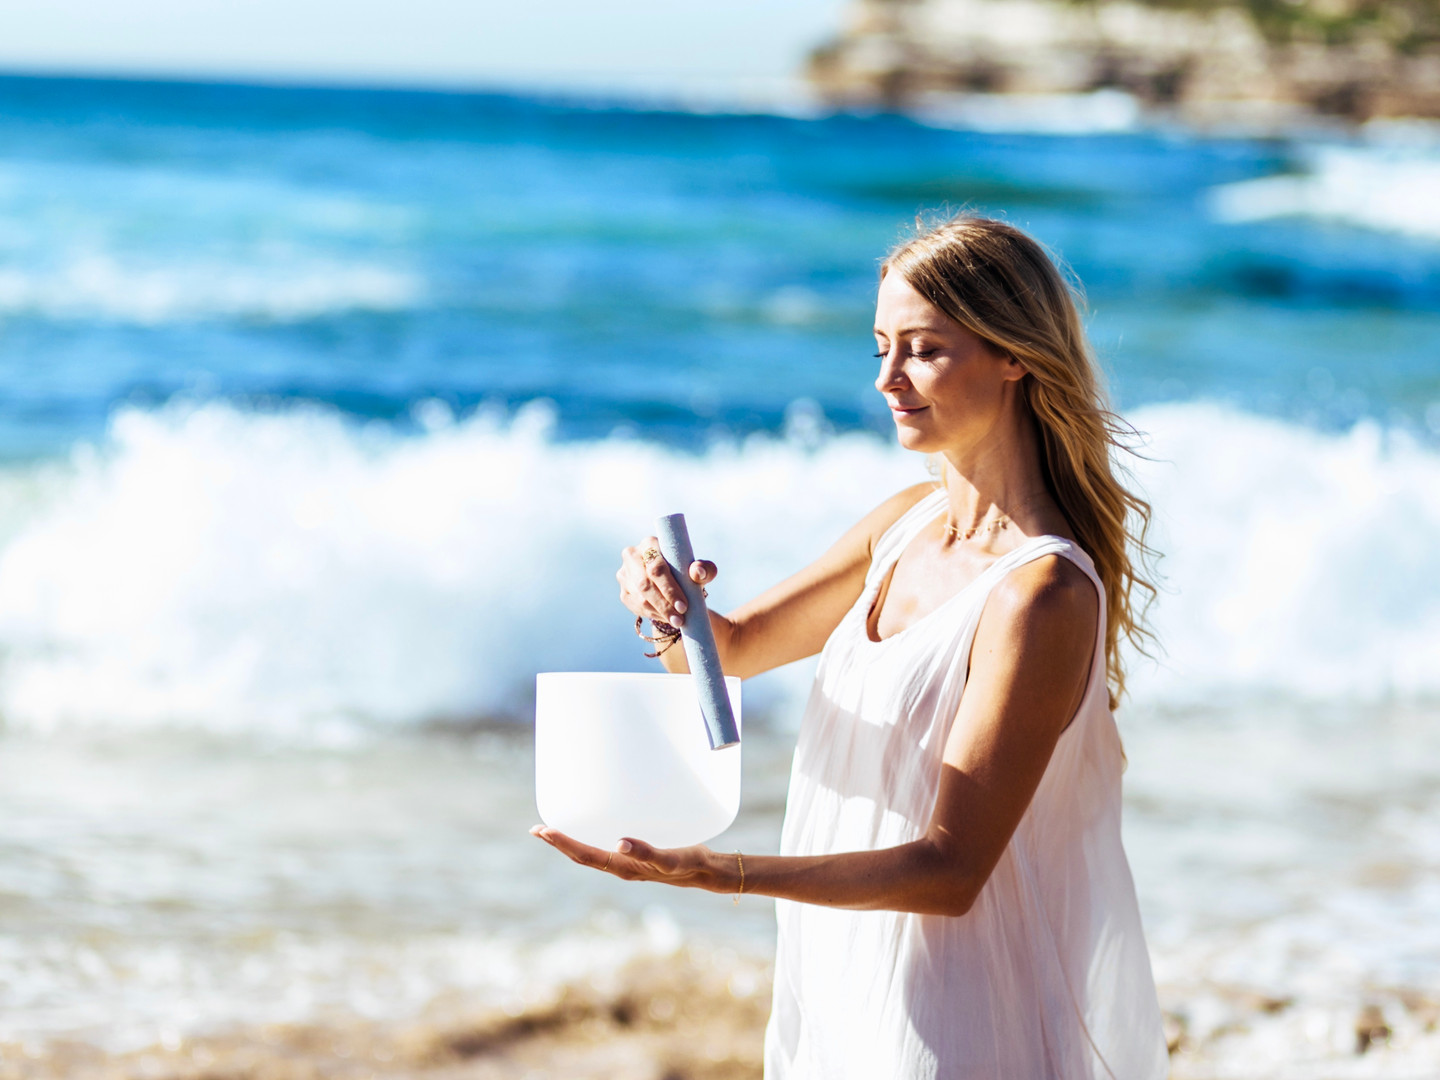 We offer Private Sound Healing sessions on Bondi Beach!